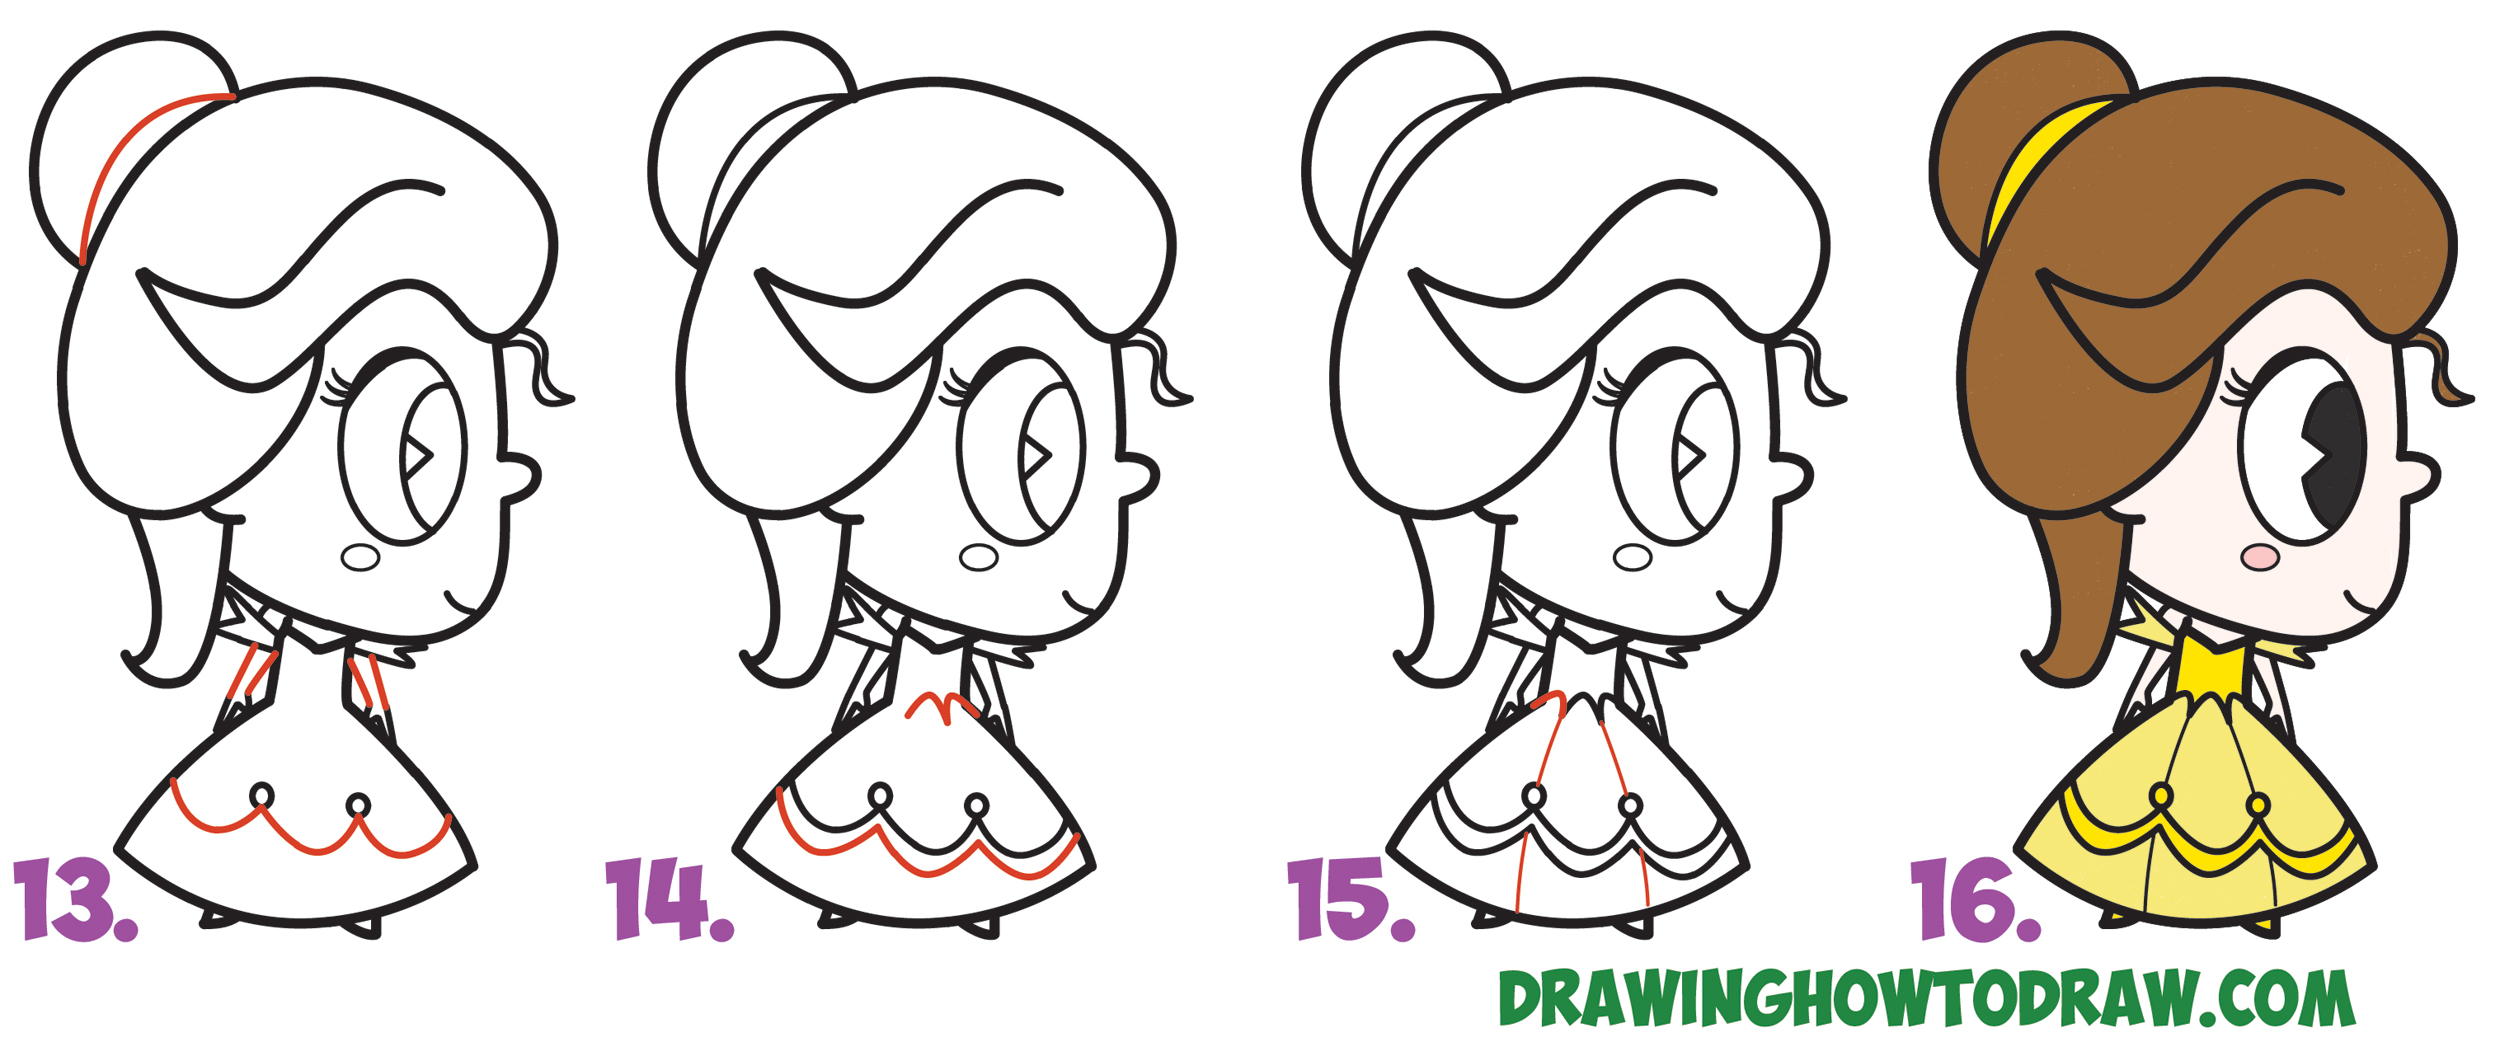 Learn How to Draw Cute Kawaii Chibi Belle from Disney's Beauty and the Beast Simple Steps Drawing Leson for Beginners